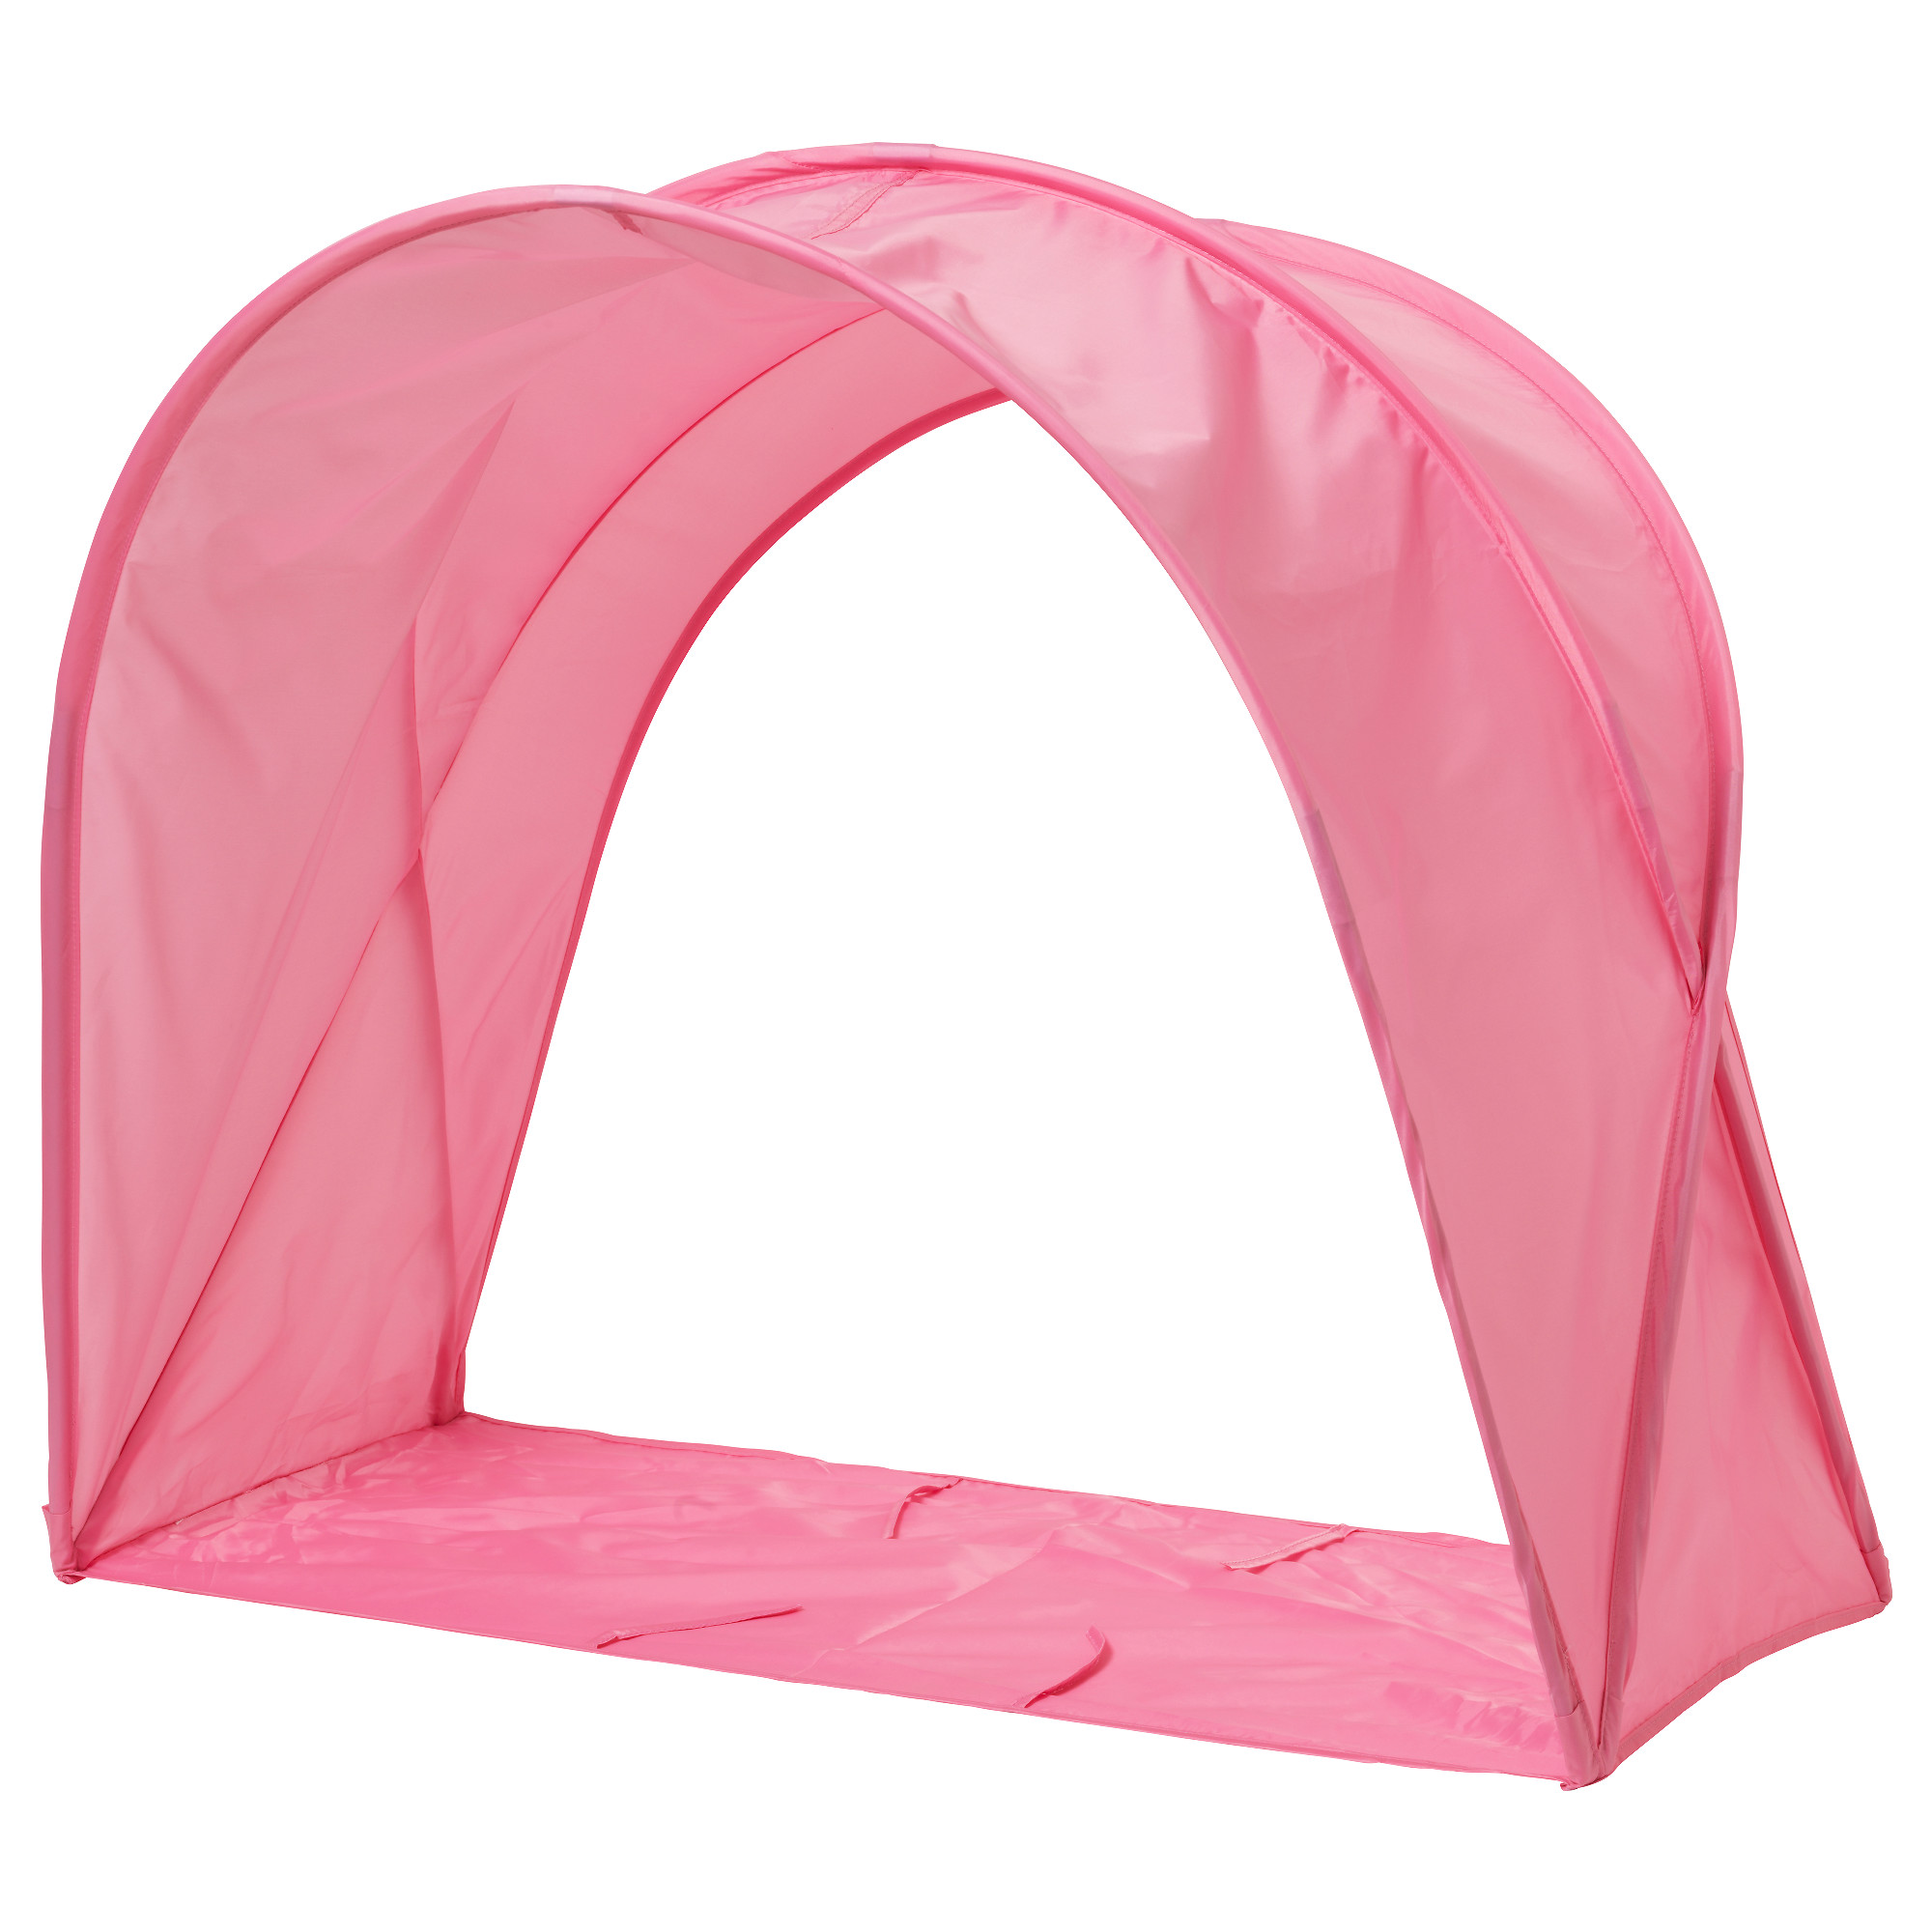 Inter IKEA Systems B.V. 1999 - 2017 | Privacy Policy  sc 1 st  Ikea : pink tent - memphite.com